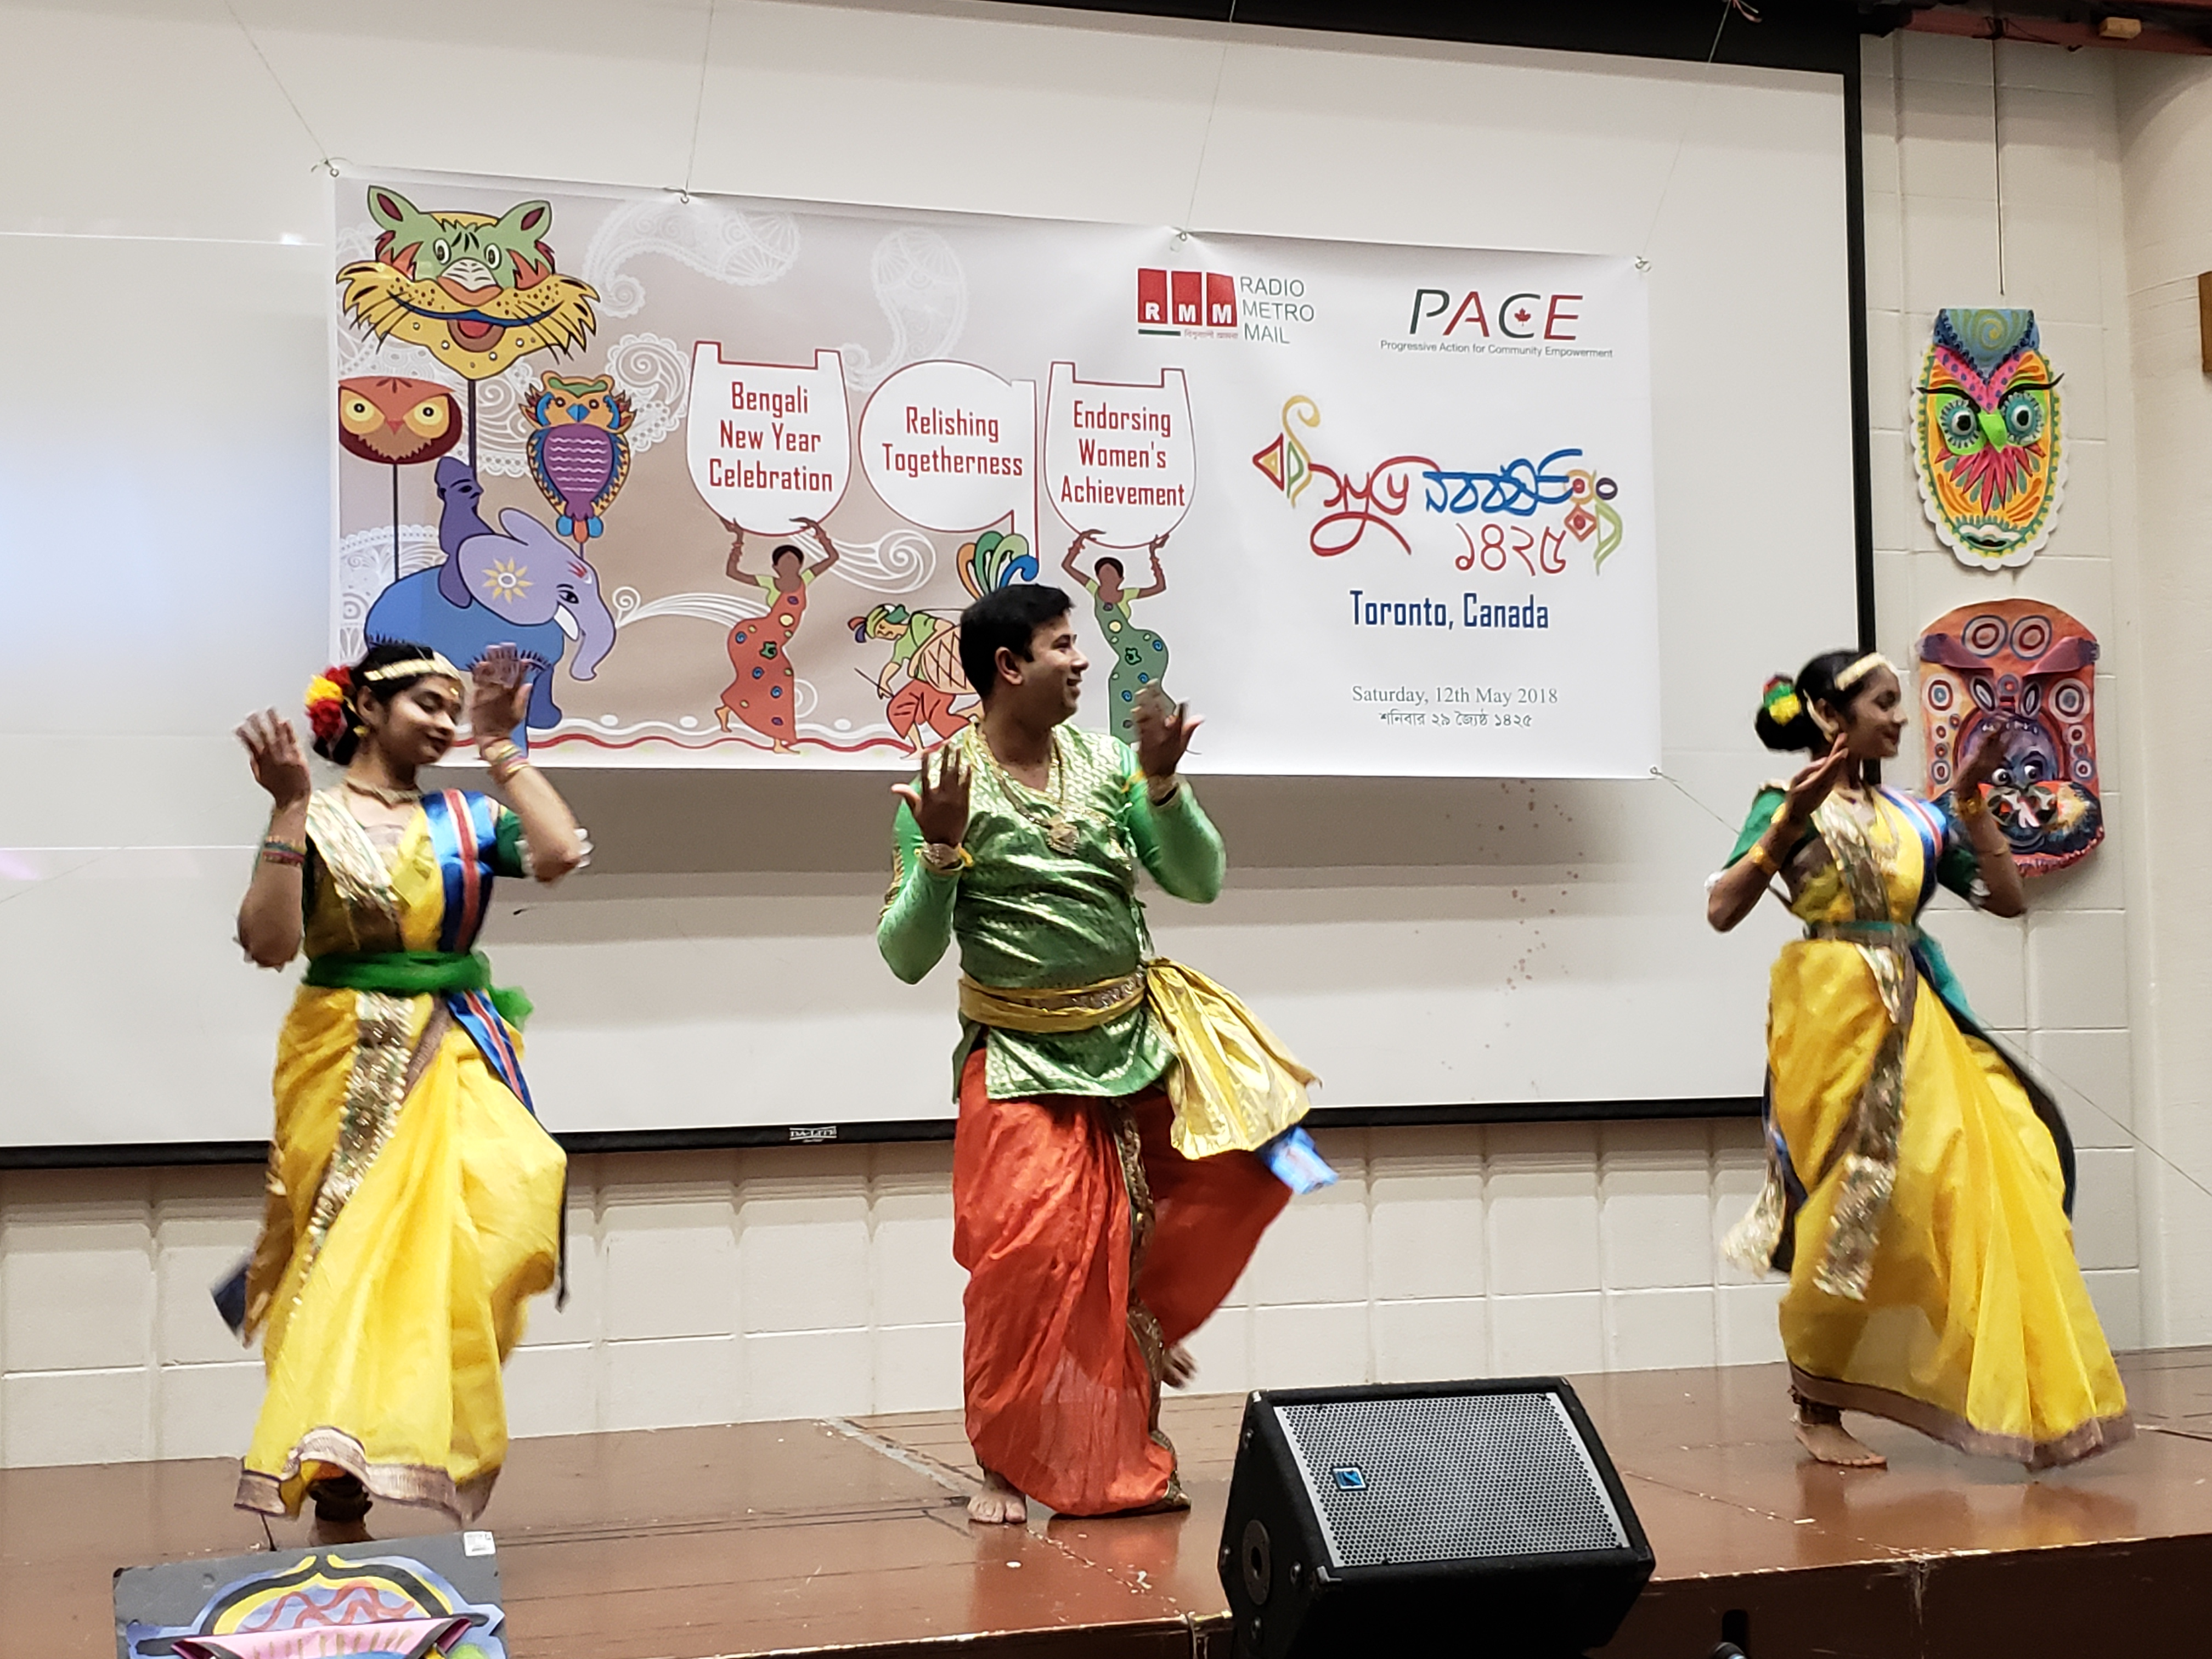 Traditional dance at the cultural event